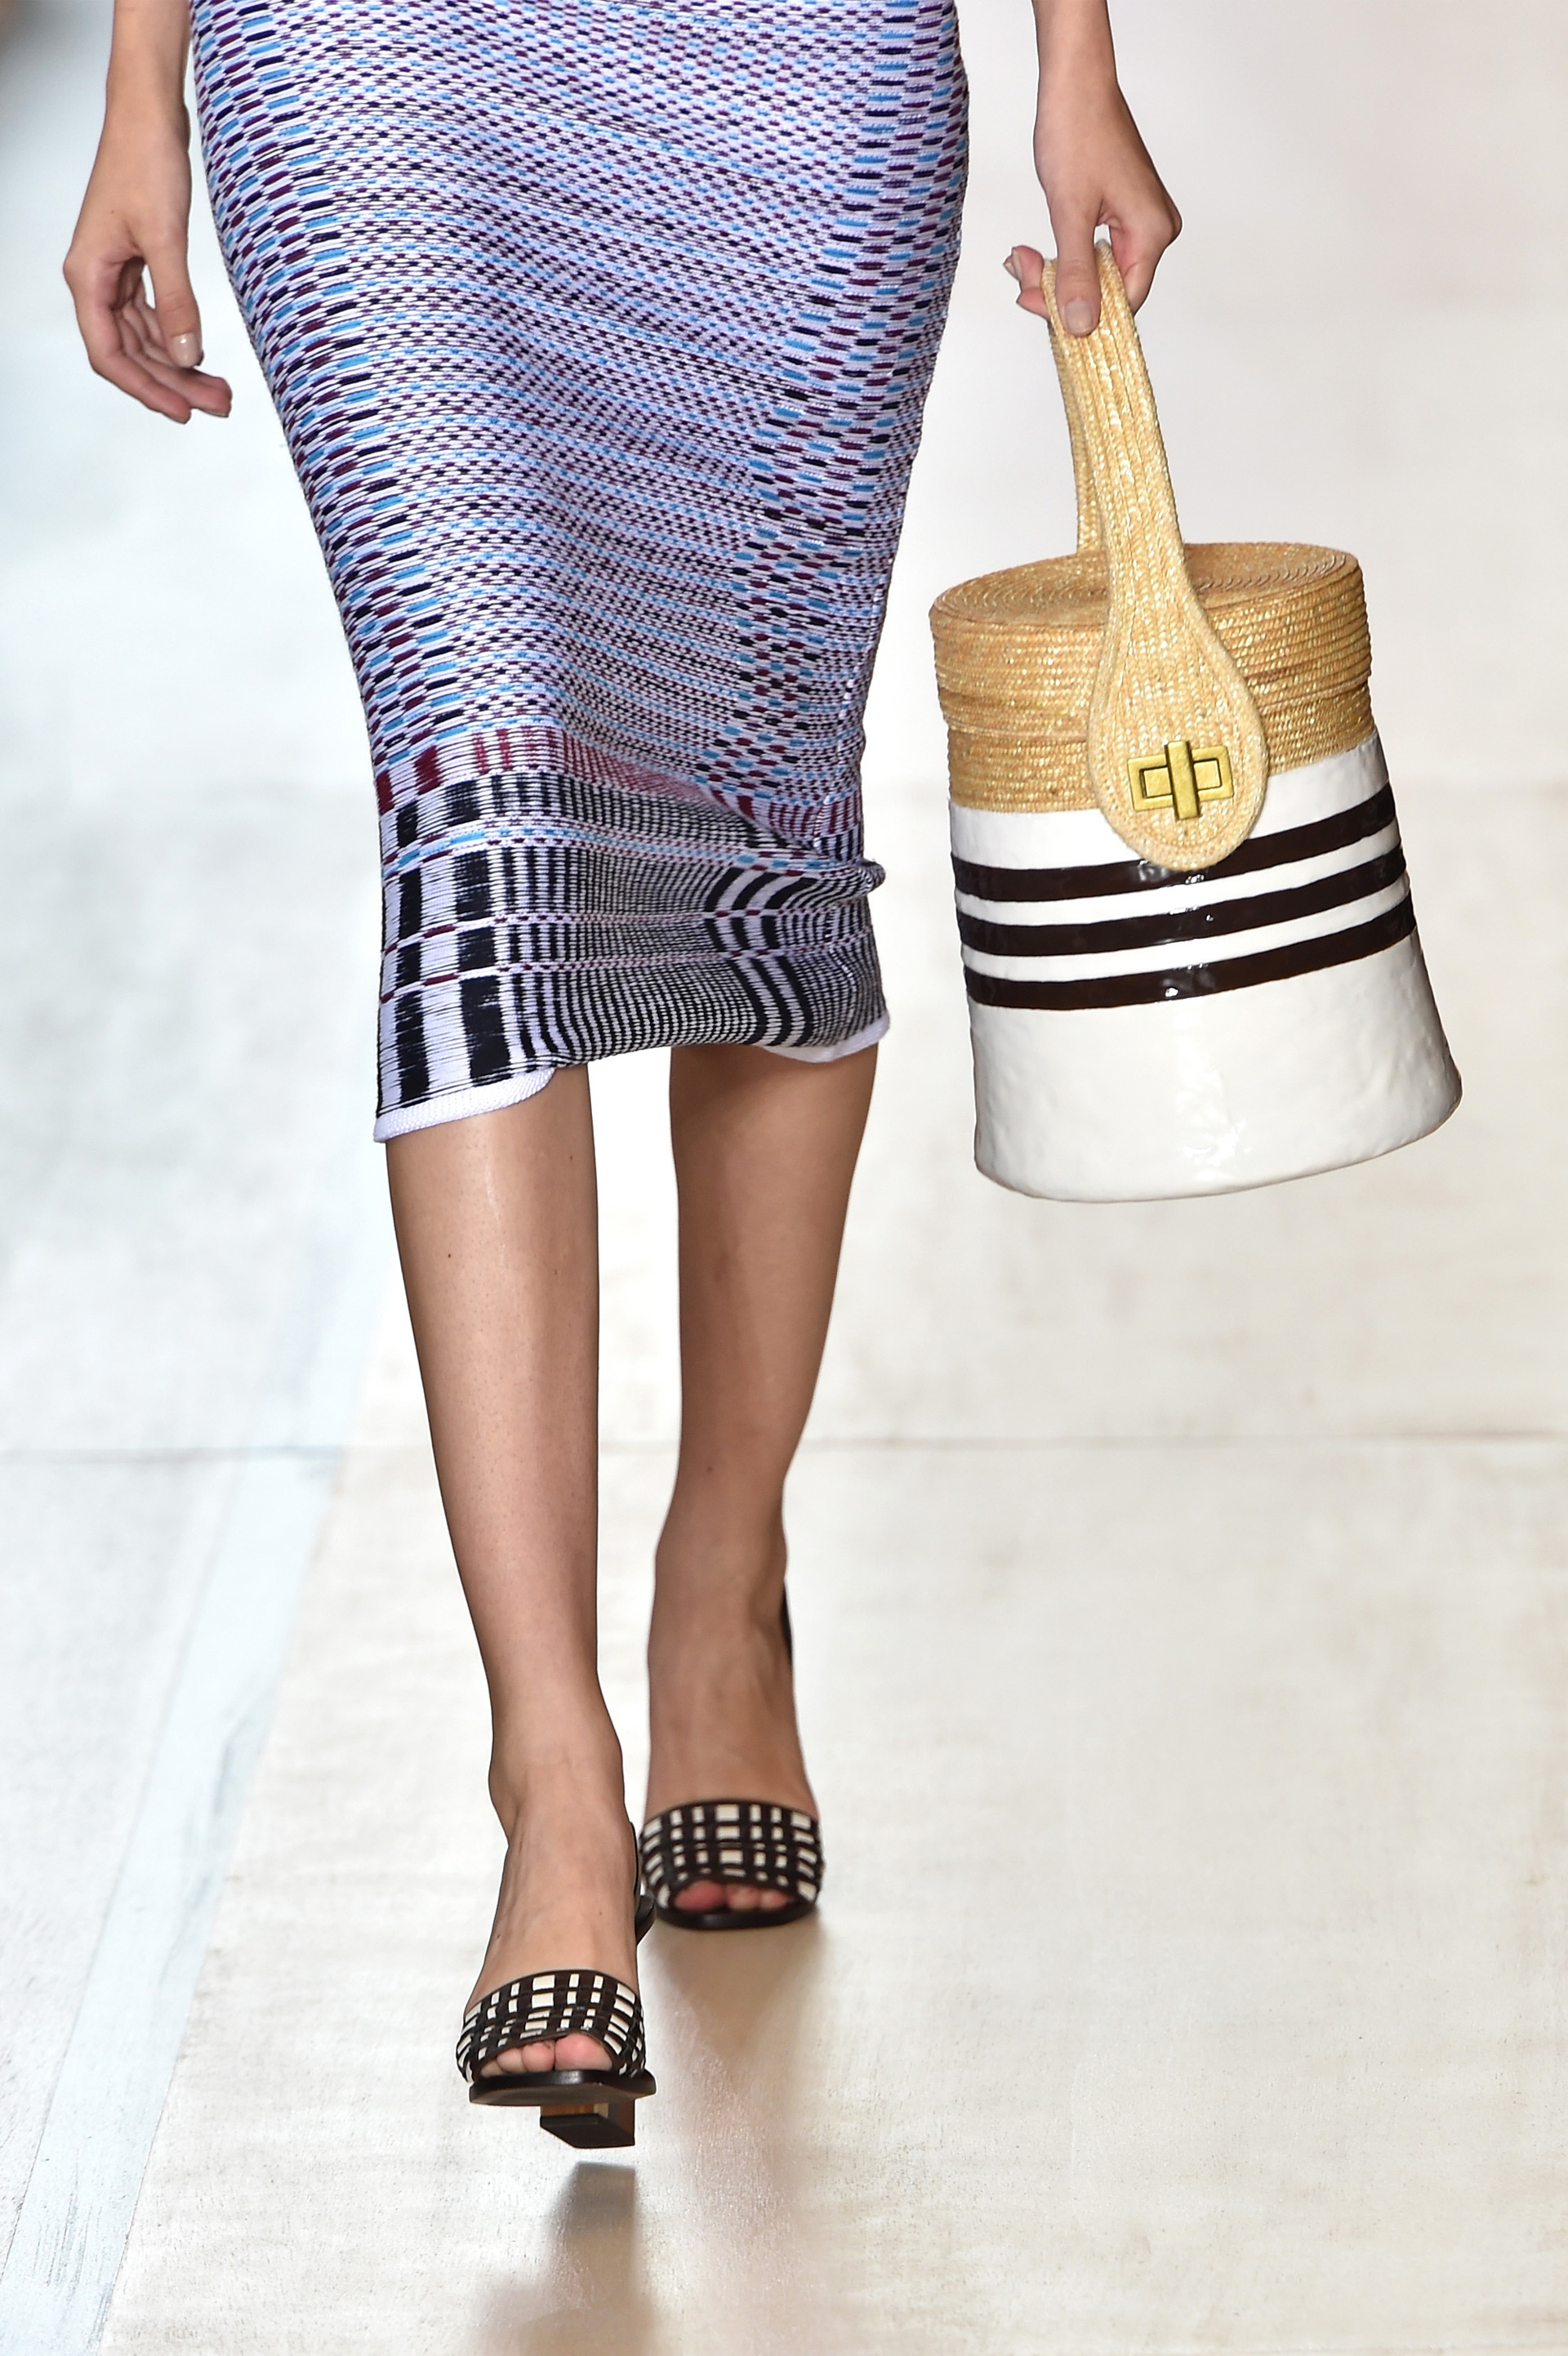 Tory Burch's spring 2015 collection 6